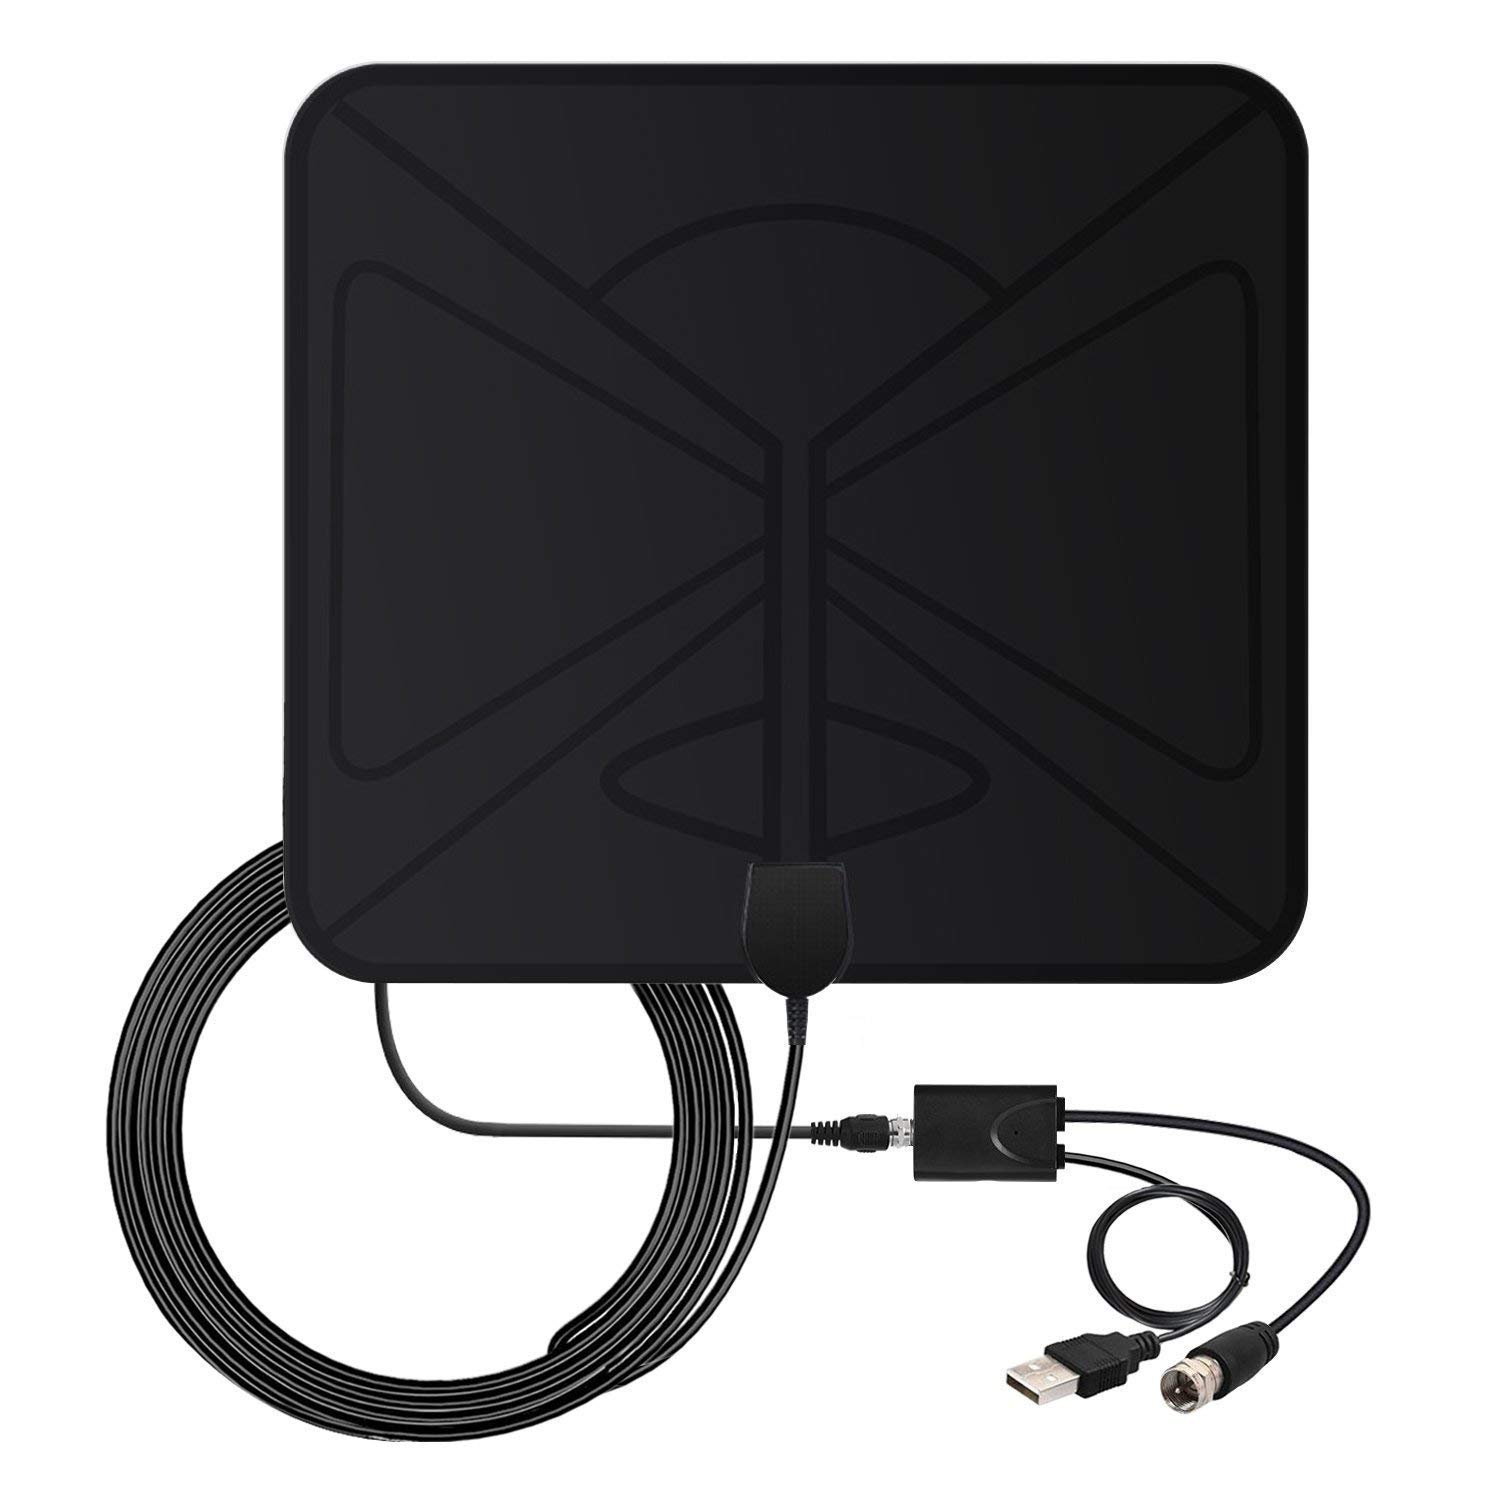 HDTV Antenna, Vinpie 50 Miles Indoor Amplified Digital Smart TV Antenna with Detachable Amplifier Signal Booster, USB Power and 10FT High Performance Coaxial Cable V-1129-2